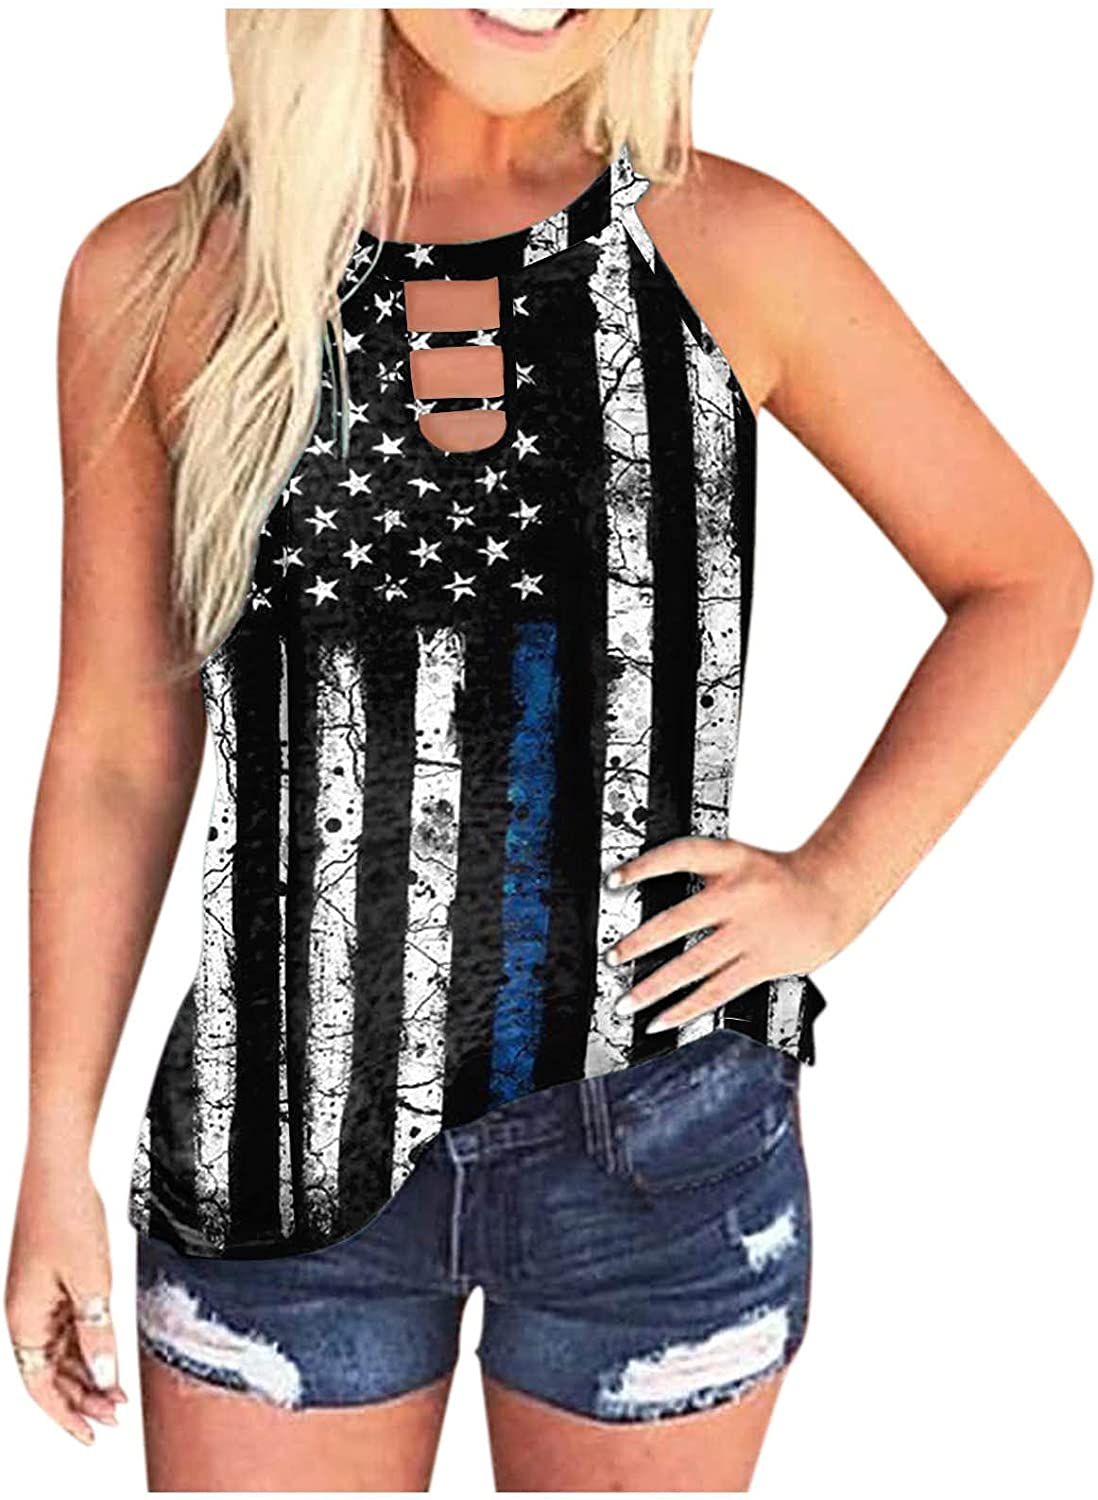 Summer Tops for Women 2021 Casual,Womens Tie Dye Workout Tank Tops Halter Neck Cut Out Summer Tees Shirts Blouses